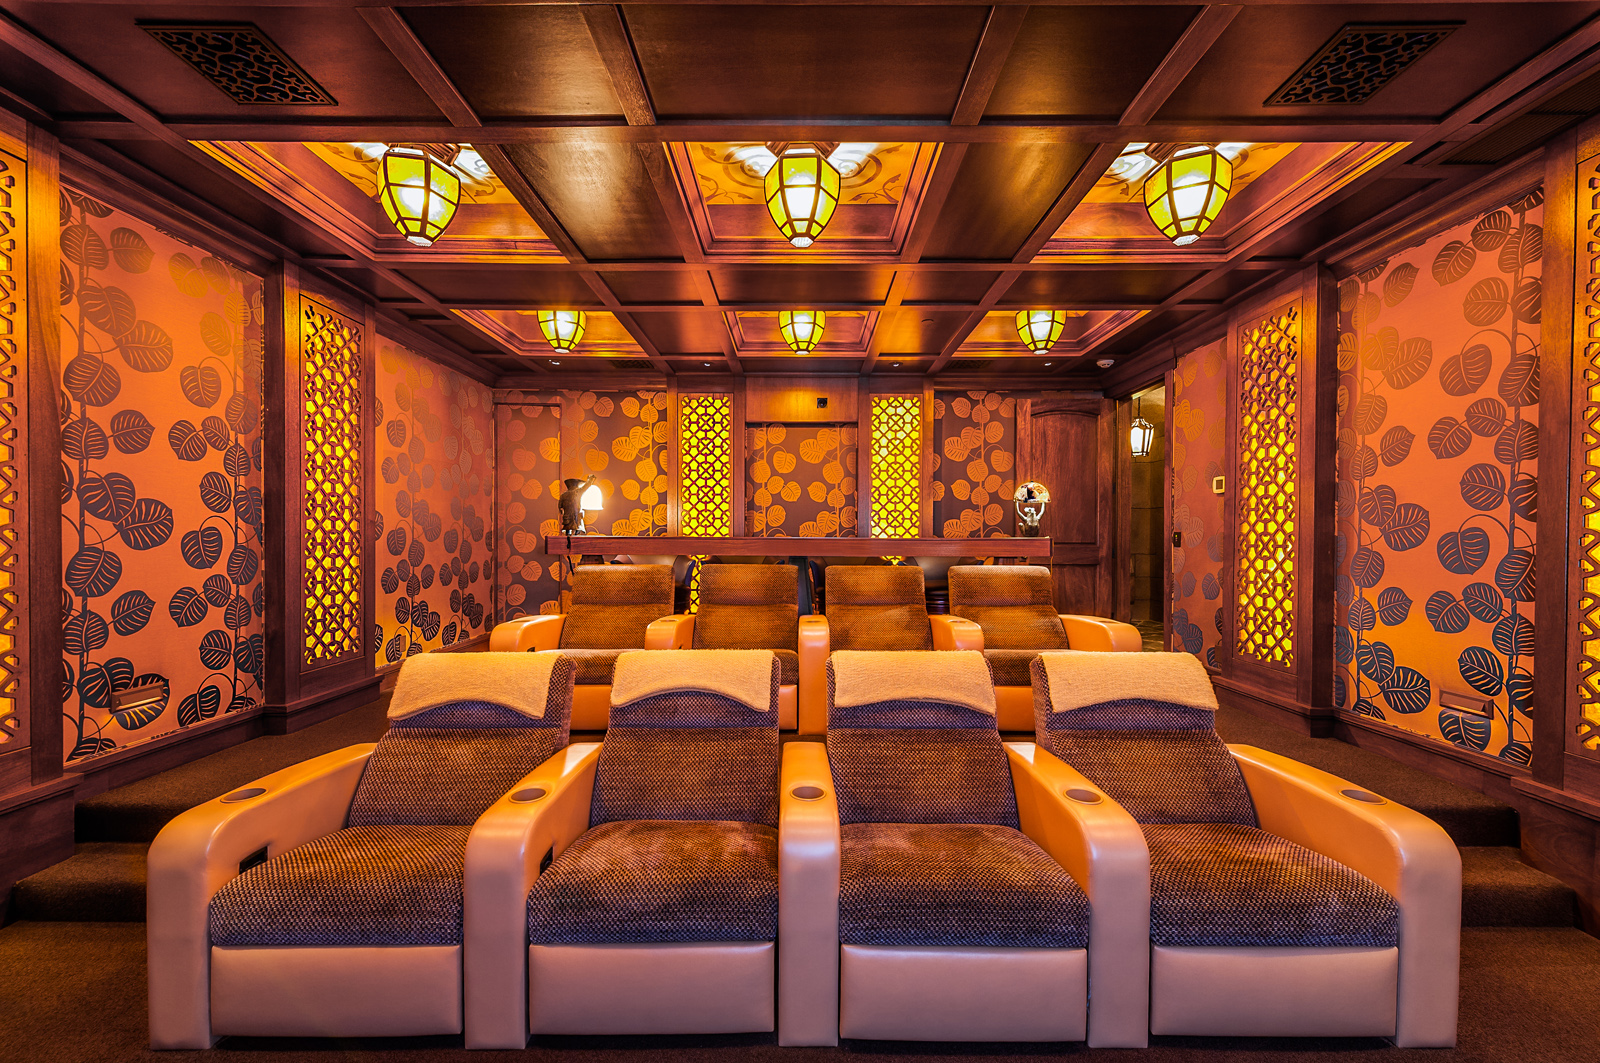 Craftsman style home theater with acoustical wall panels and custom lighting